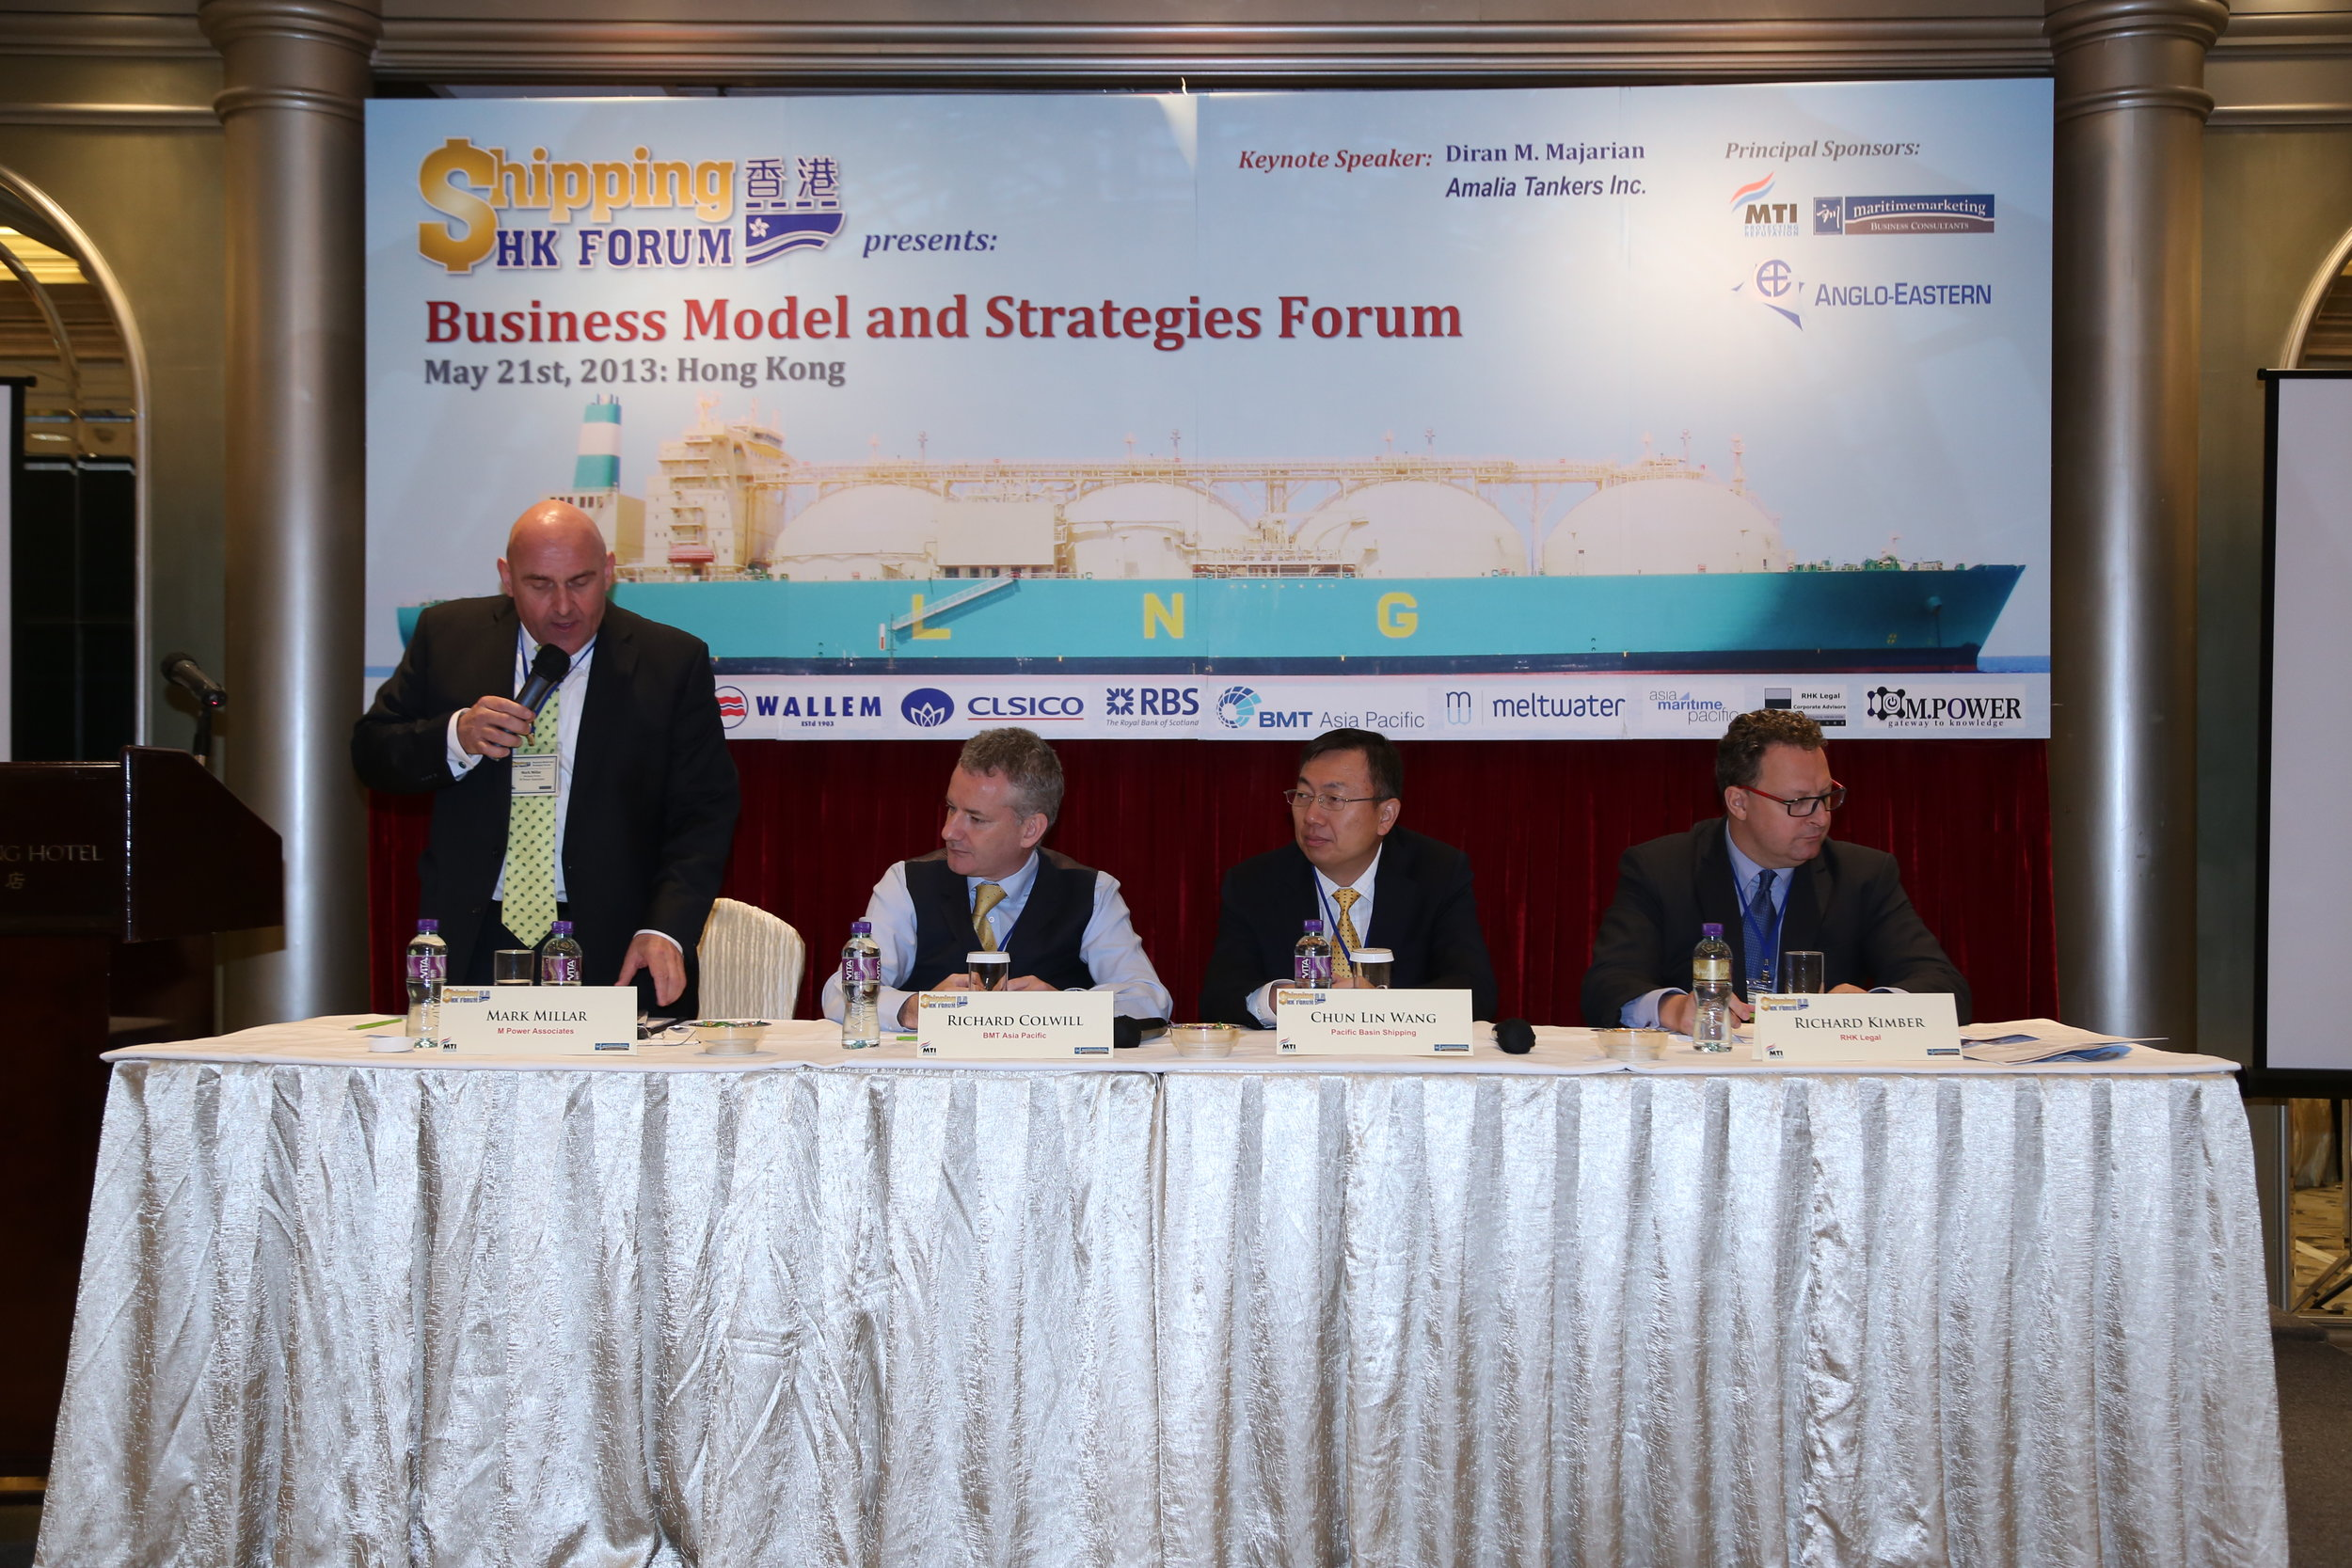 2013-05 HKG Shipping Forum-Ferdi@Regal Hotel (19).JPG